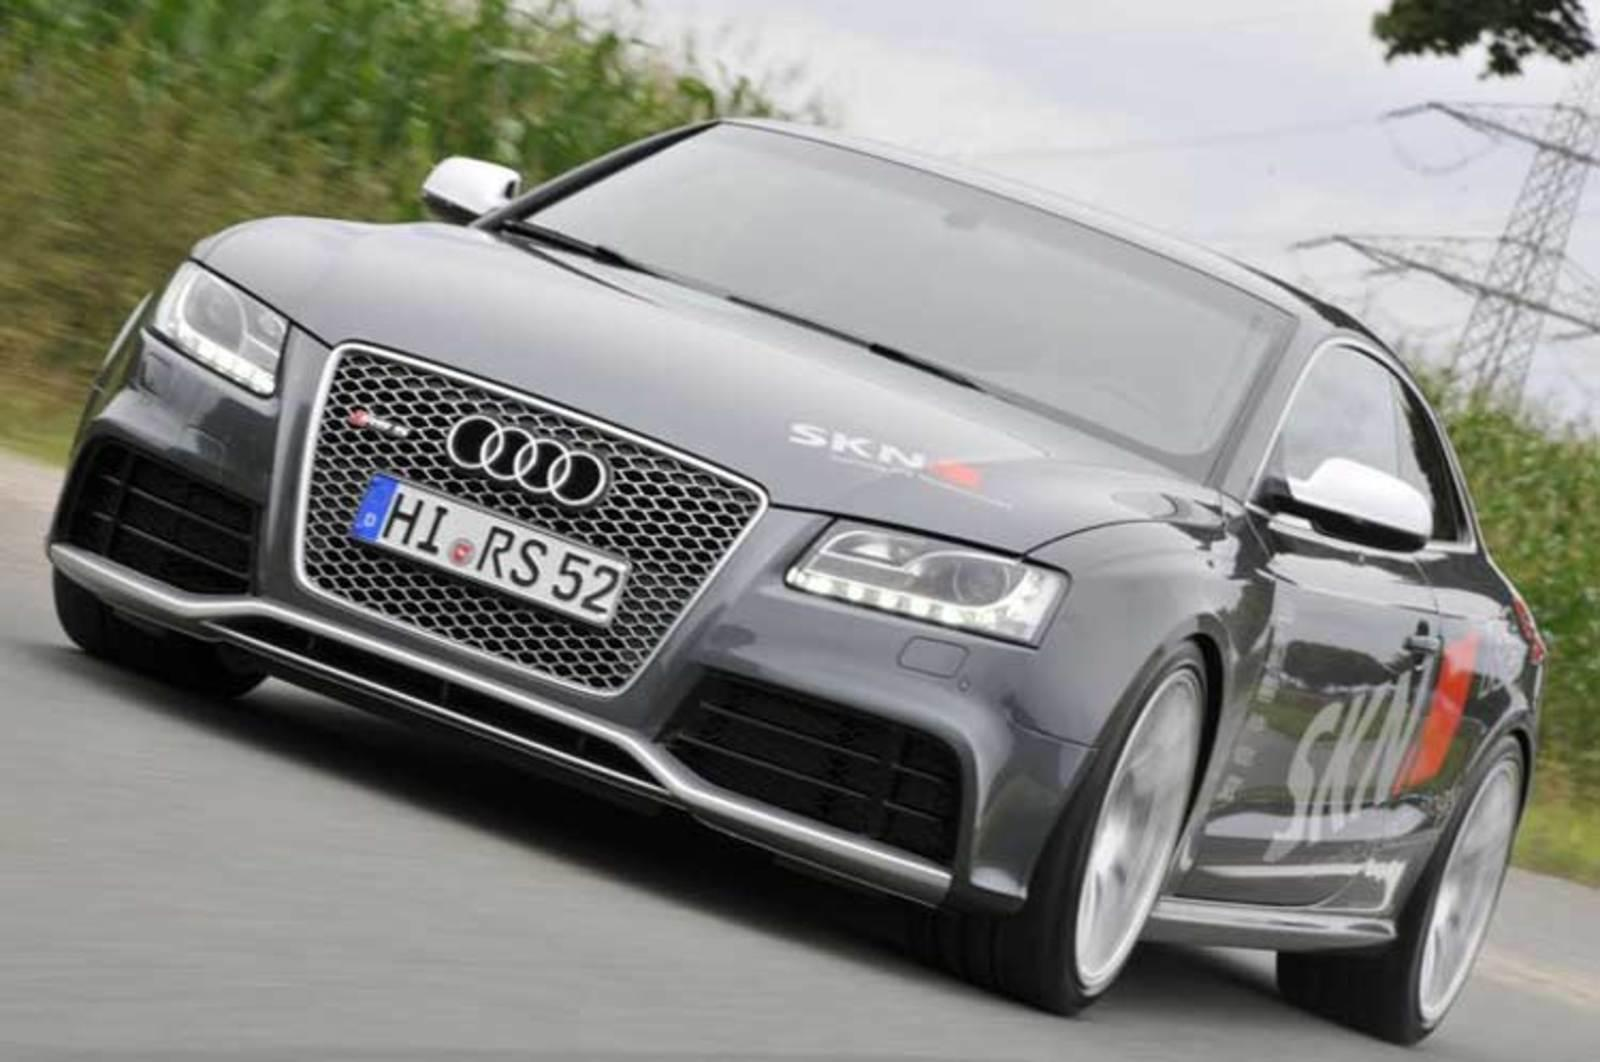 2010 audi rs5 by skn tuning review top speed. Black Bedroom Furniture Sets. Home Design Ideas